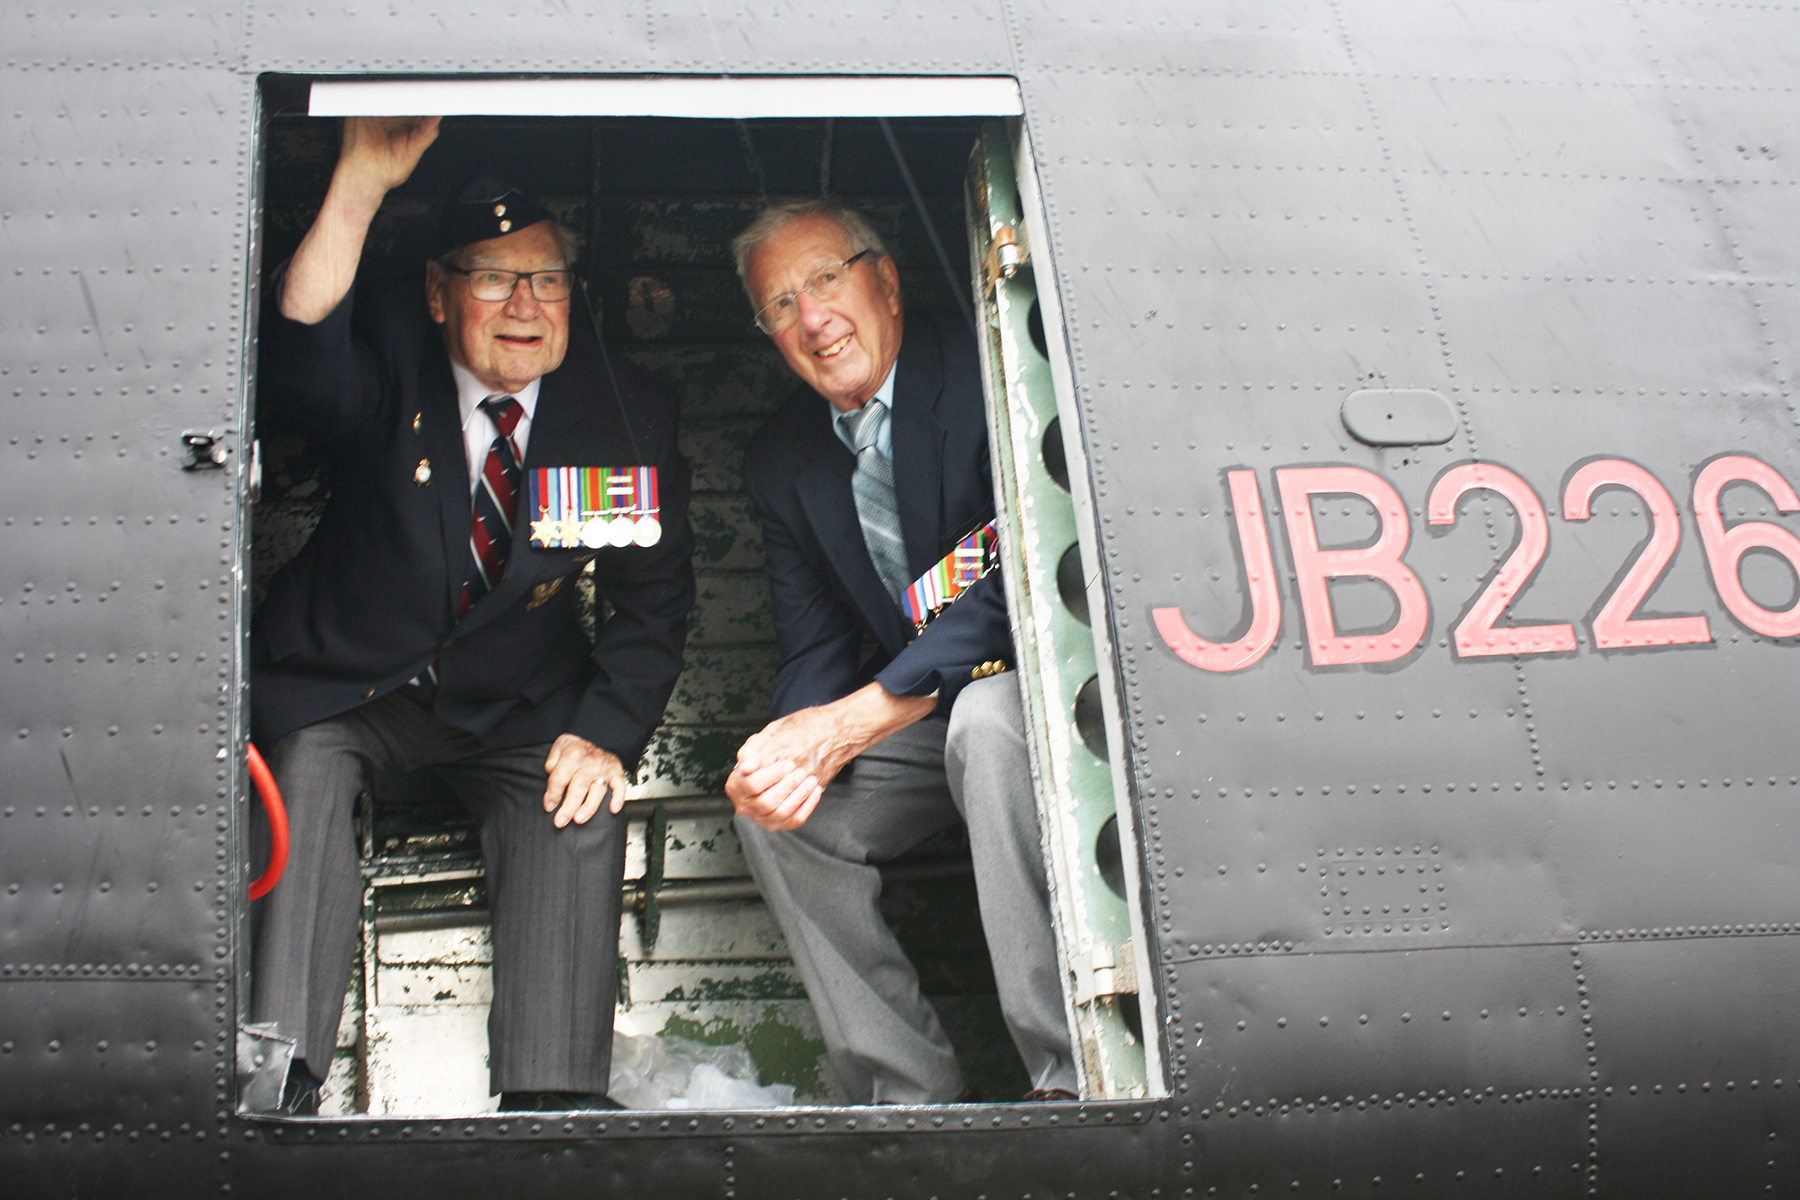 Two elderly men wearing medals on their blazers peer out of a vintage aircraft with riveted skin and bearing the designation JB266.